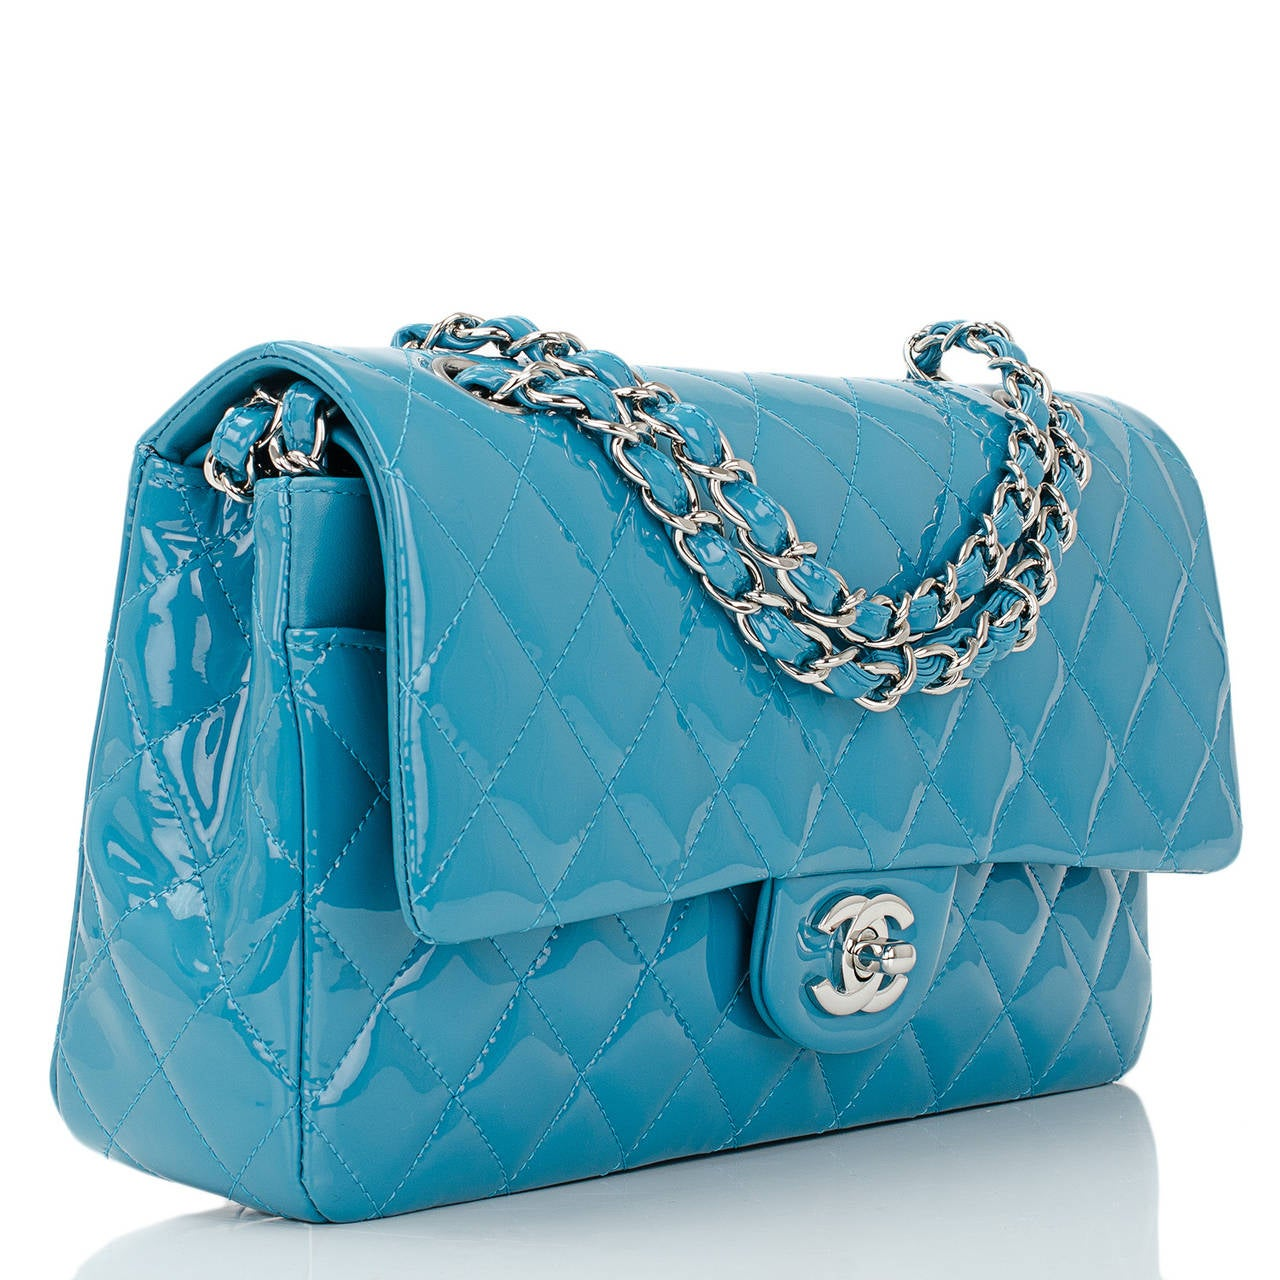 Chanel Medium Classic double flap bag of turquoise quilted patent leather with silver ton hardware features a front flap with signature CC turnlock closure, half moon back pocket and an adjustable interwoven silver tone chain link and turquoise